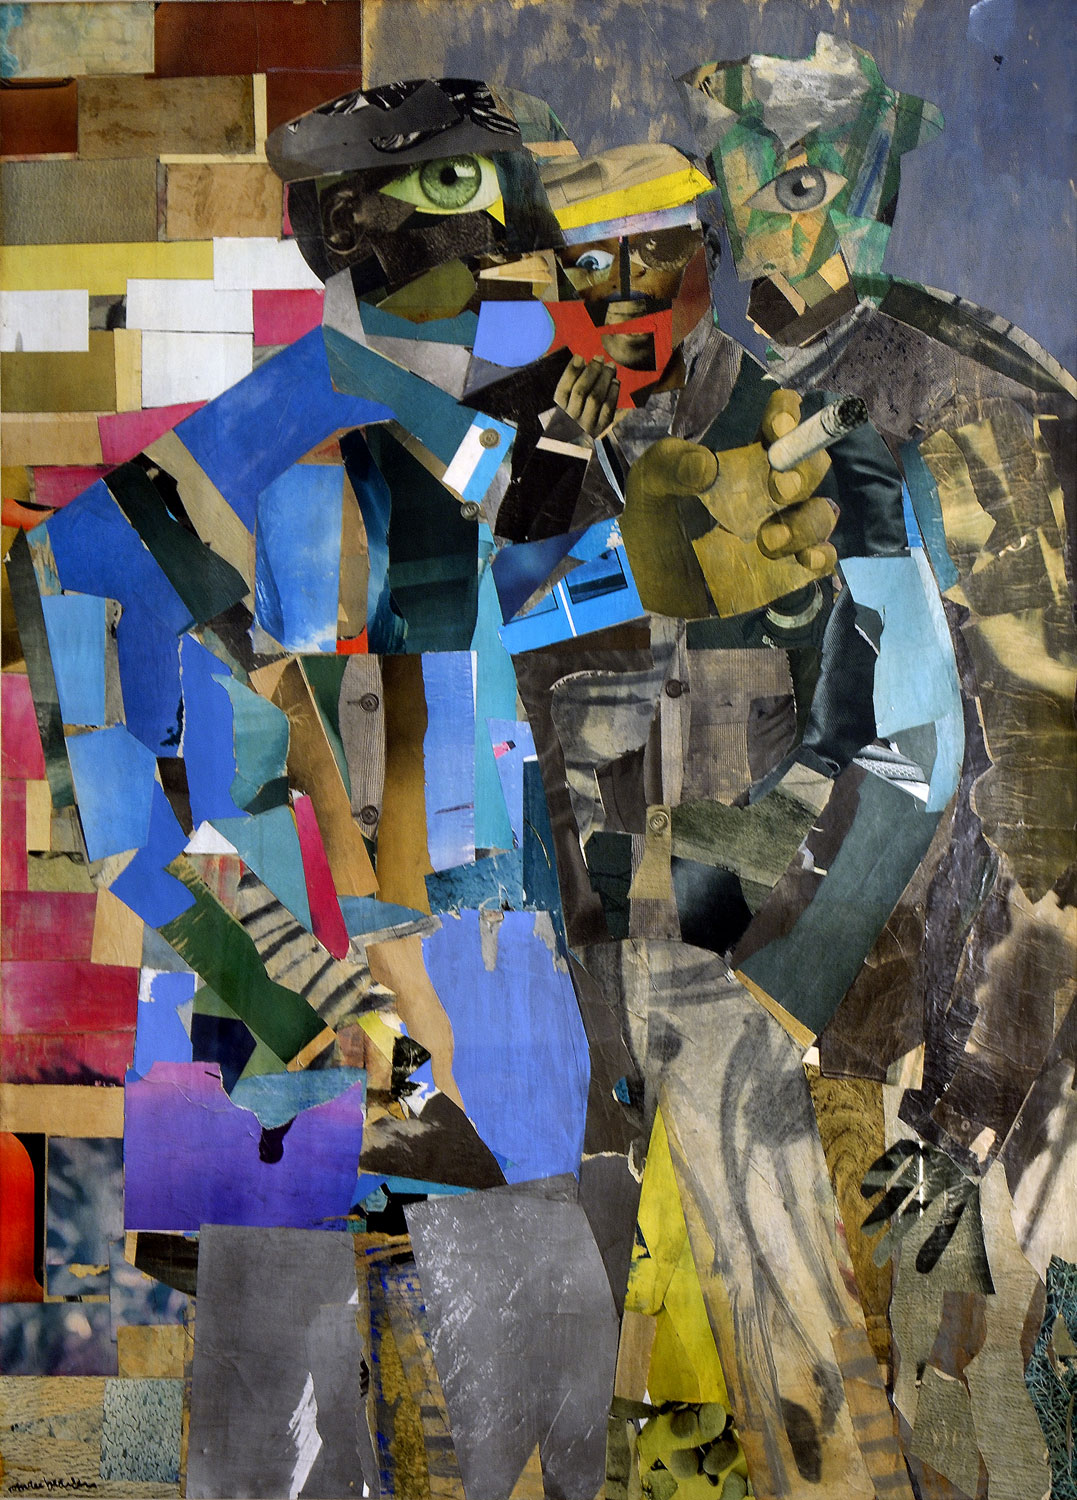 Romare Bearden depicts three men in fractured colorful shapes